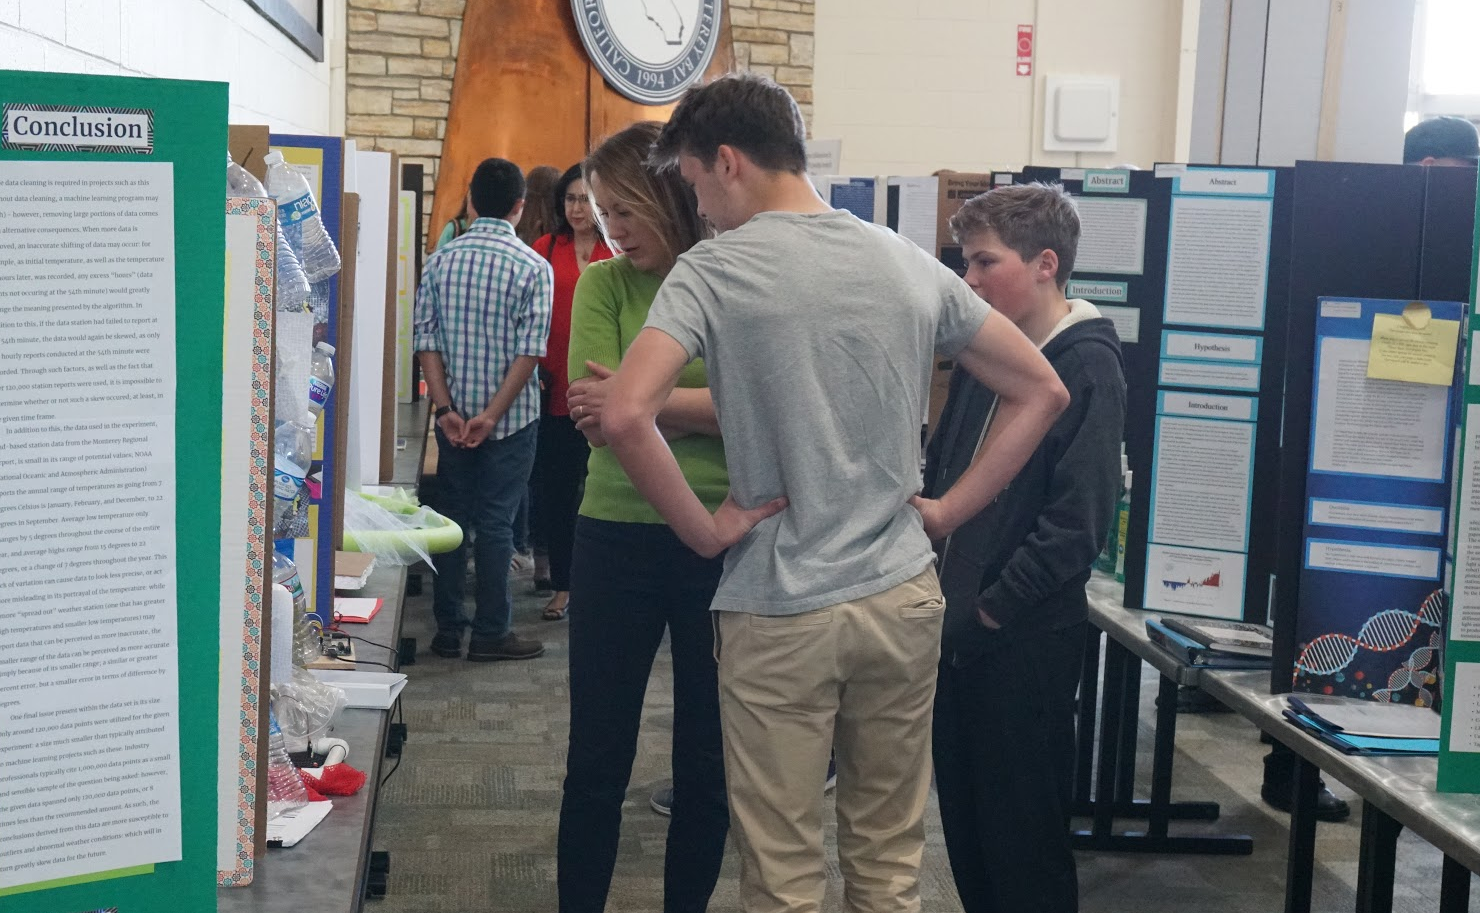 Attendees viewing Science Fair posters